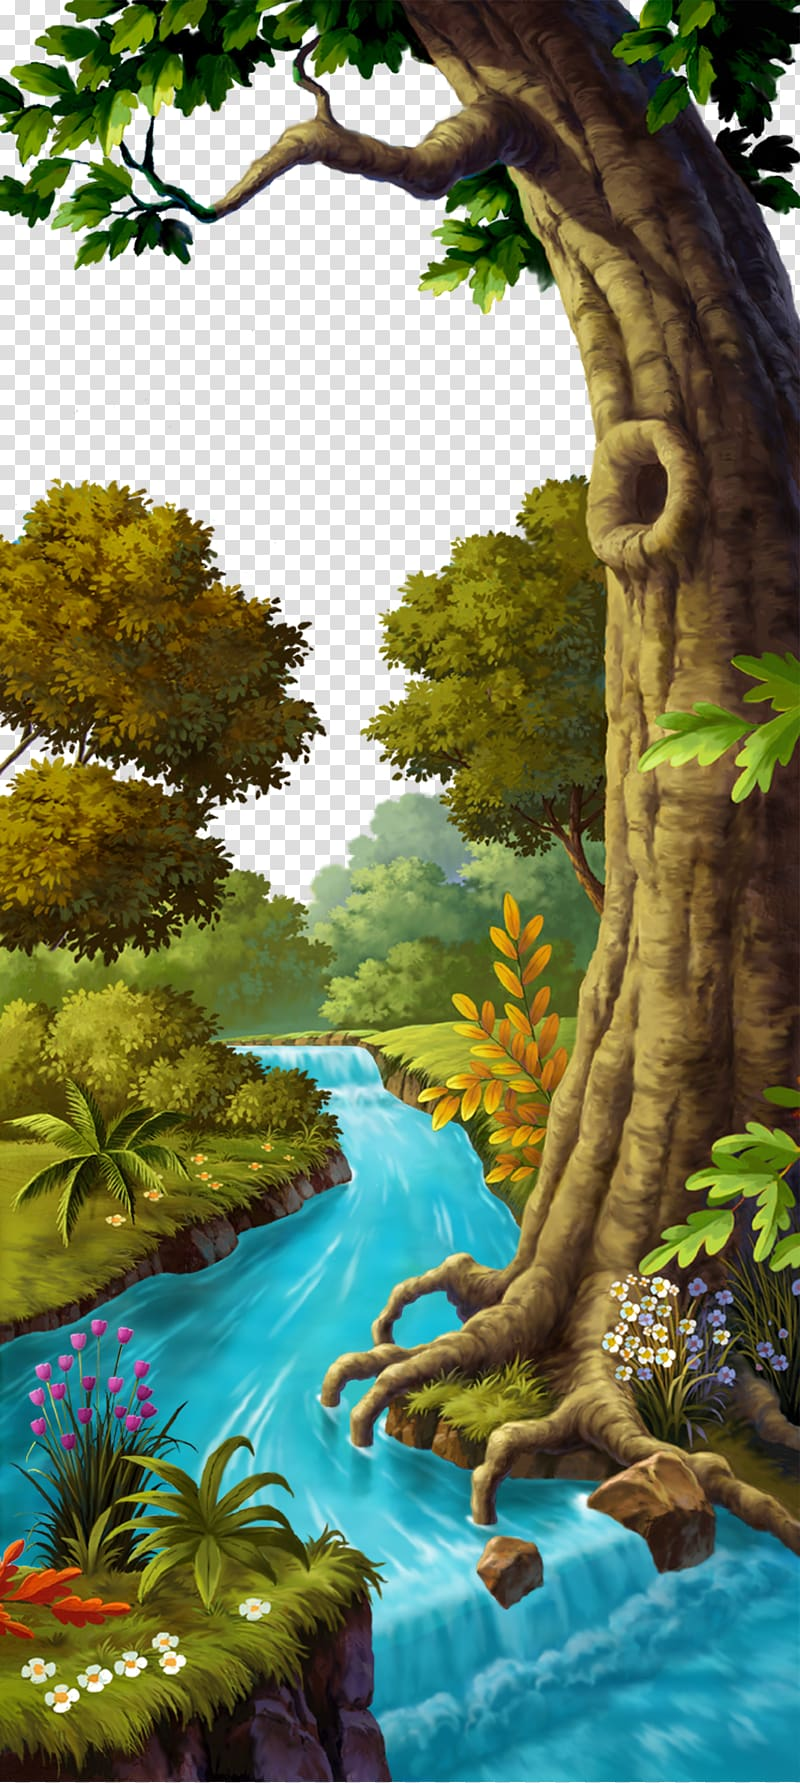 Lake clipart forest stream. Body of water surrounding